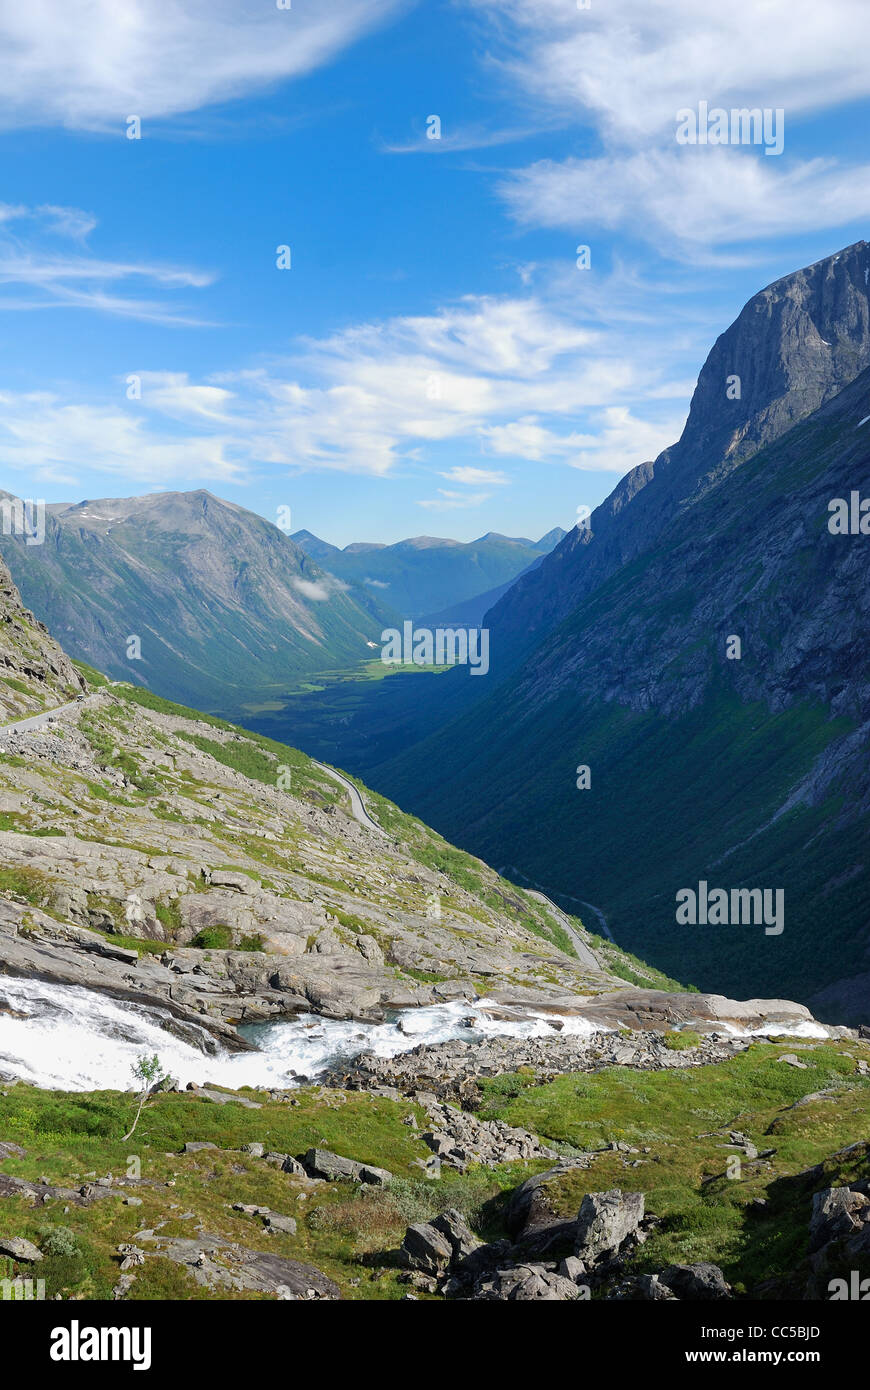 Serpentine road twisting on the mountain. Trollstigen. - Stock Image